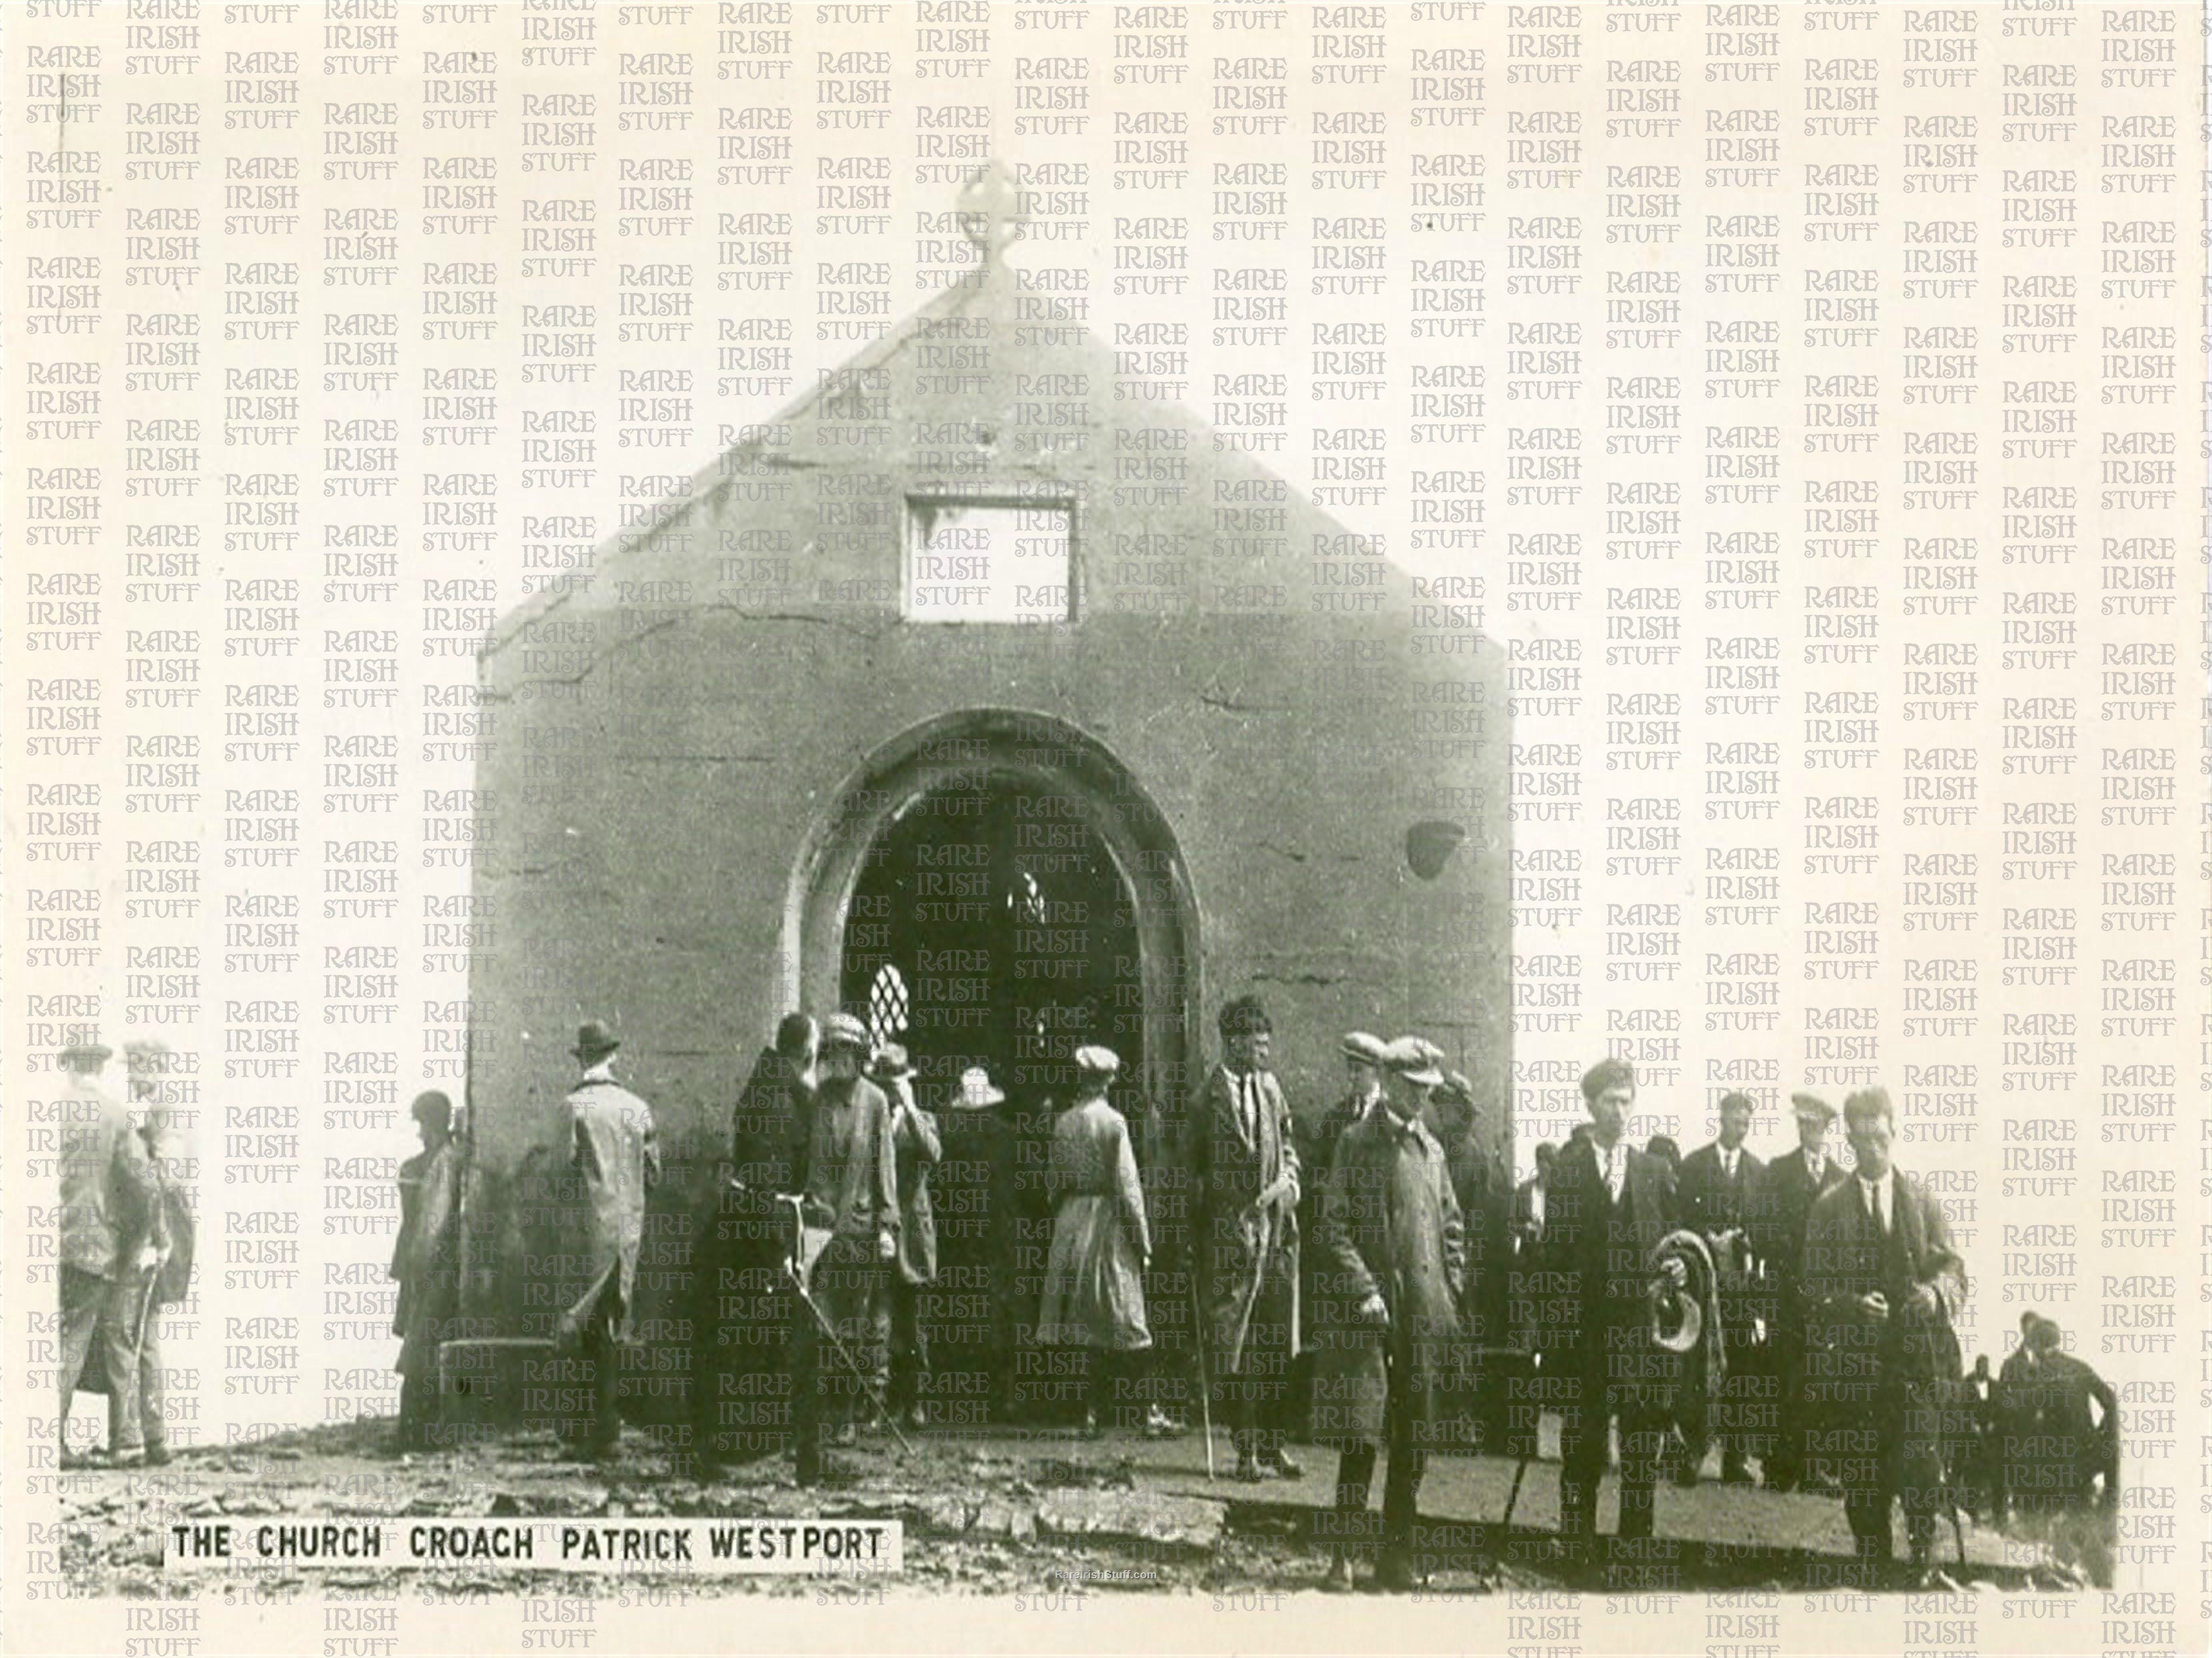 Church on summit of  Croagh  Patrick   Westport   Co.  Mayo   Ireland 1940  Thumbnail0